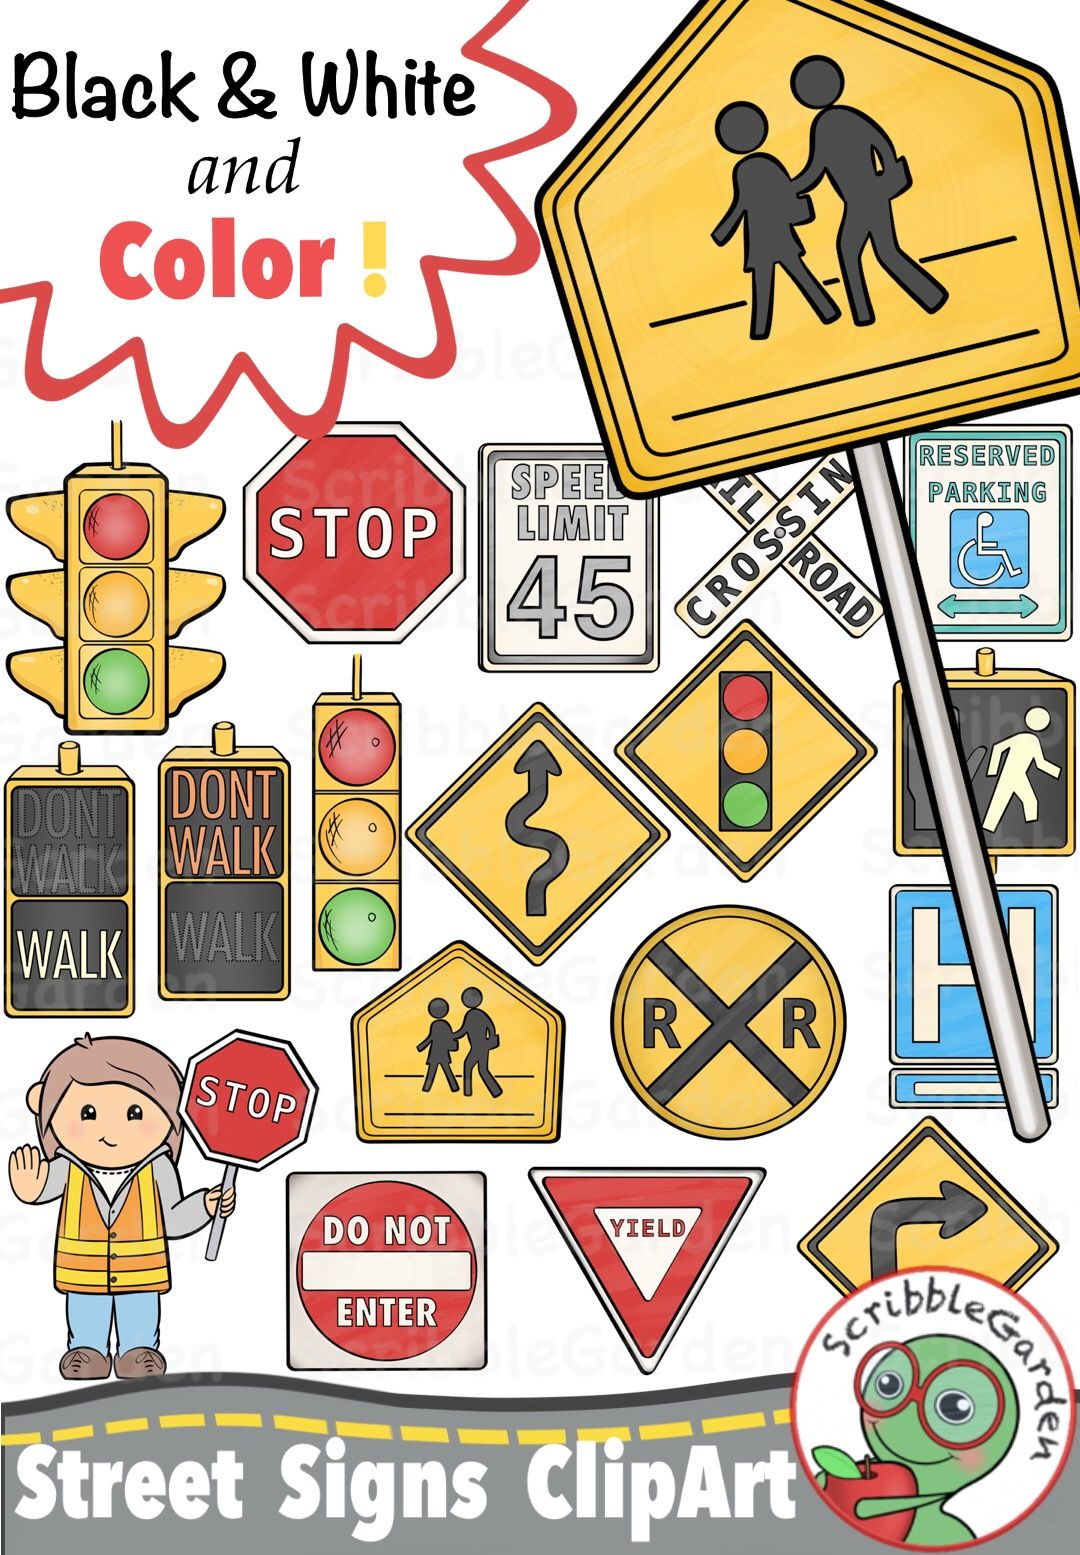 Safety instruction. Road street signs clipart